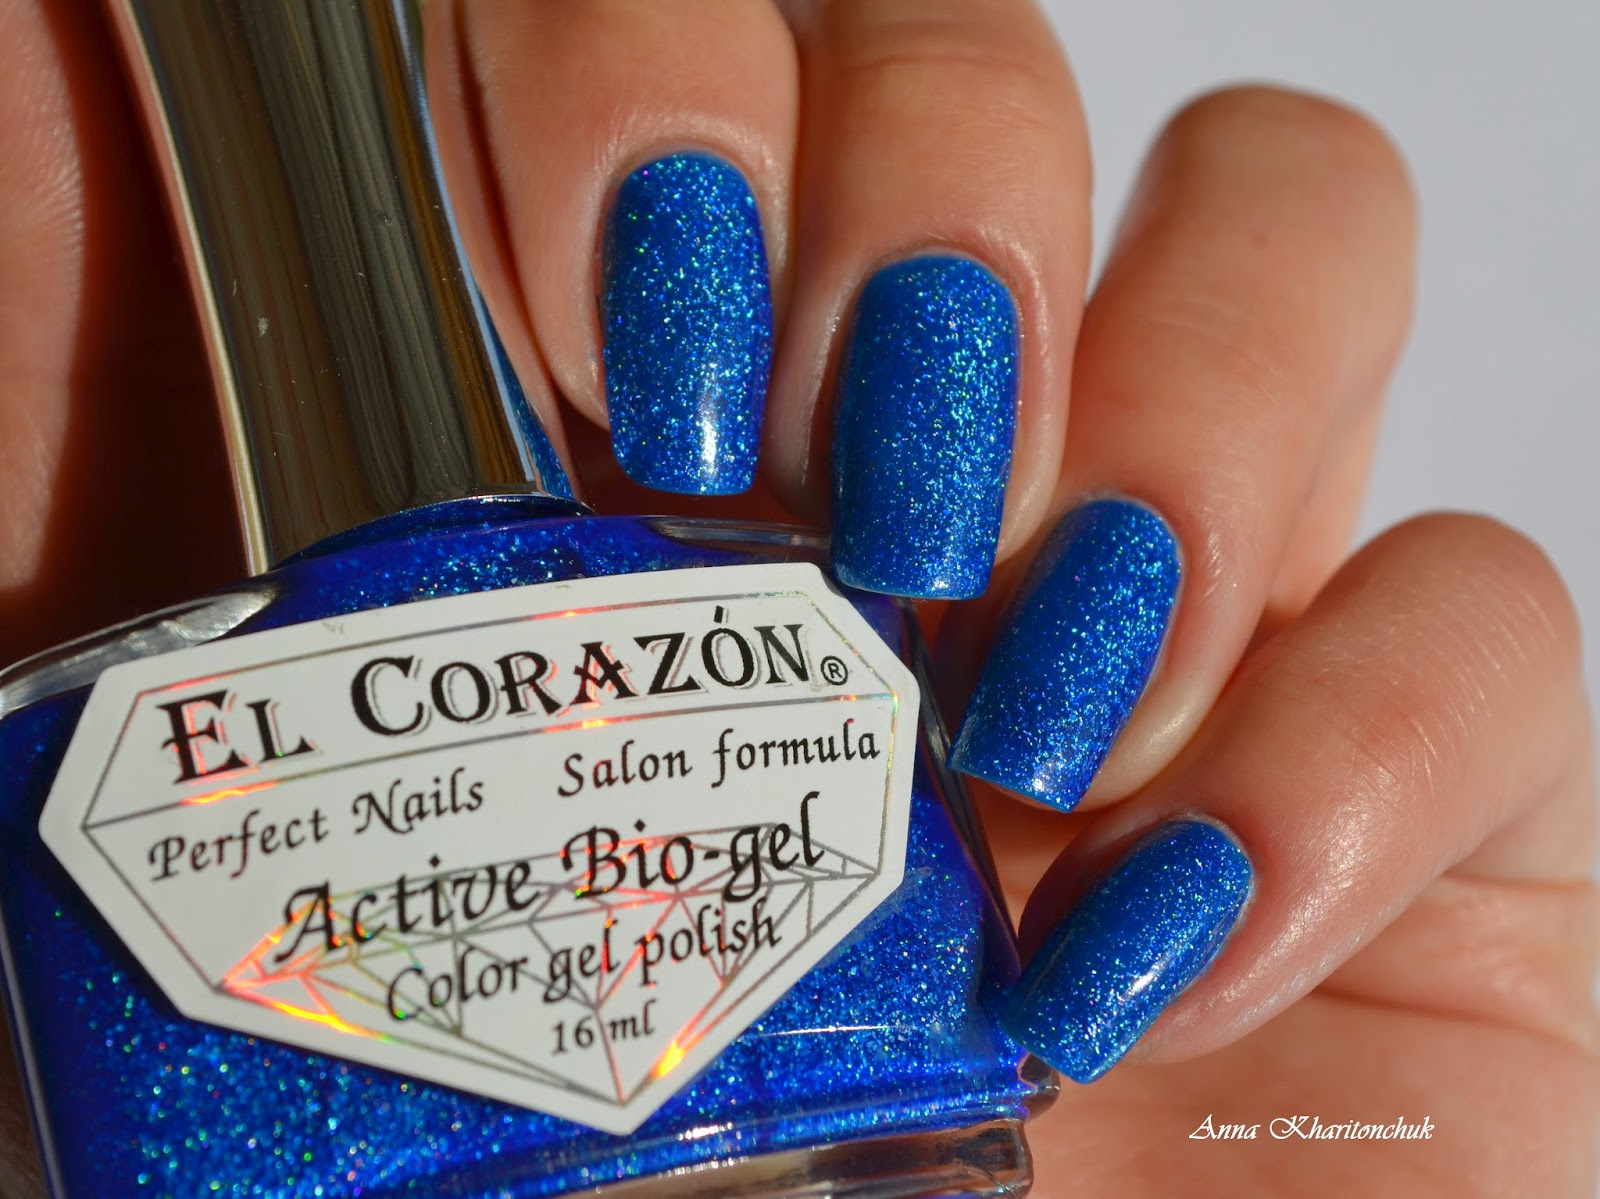 El Corazon Active Bio-Gel # 423/502 Large Hologram Ocean